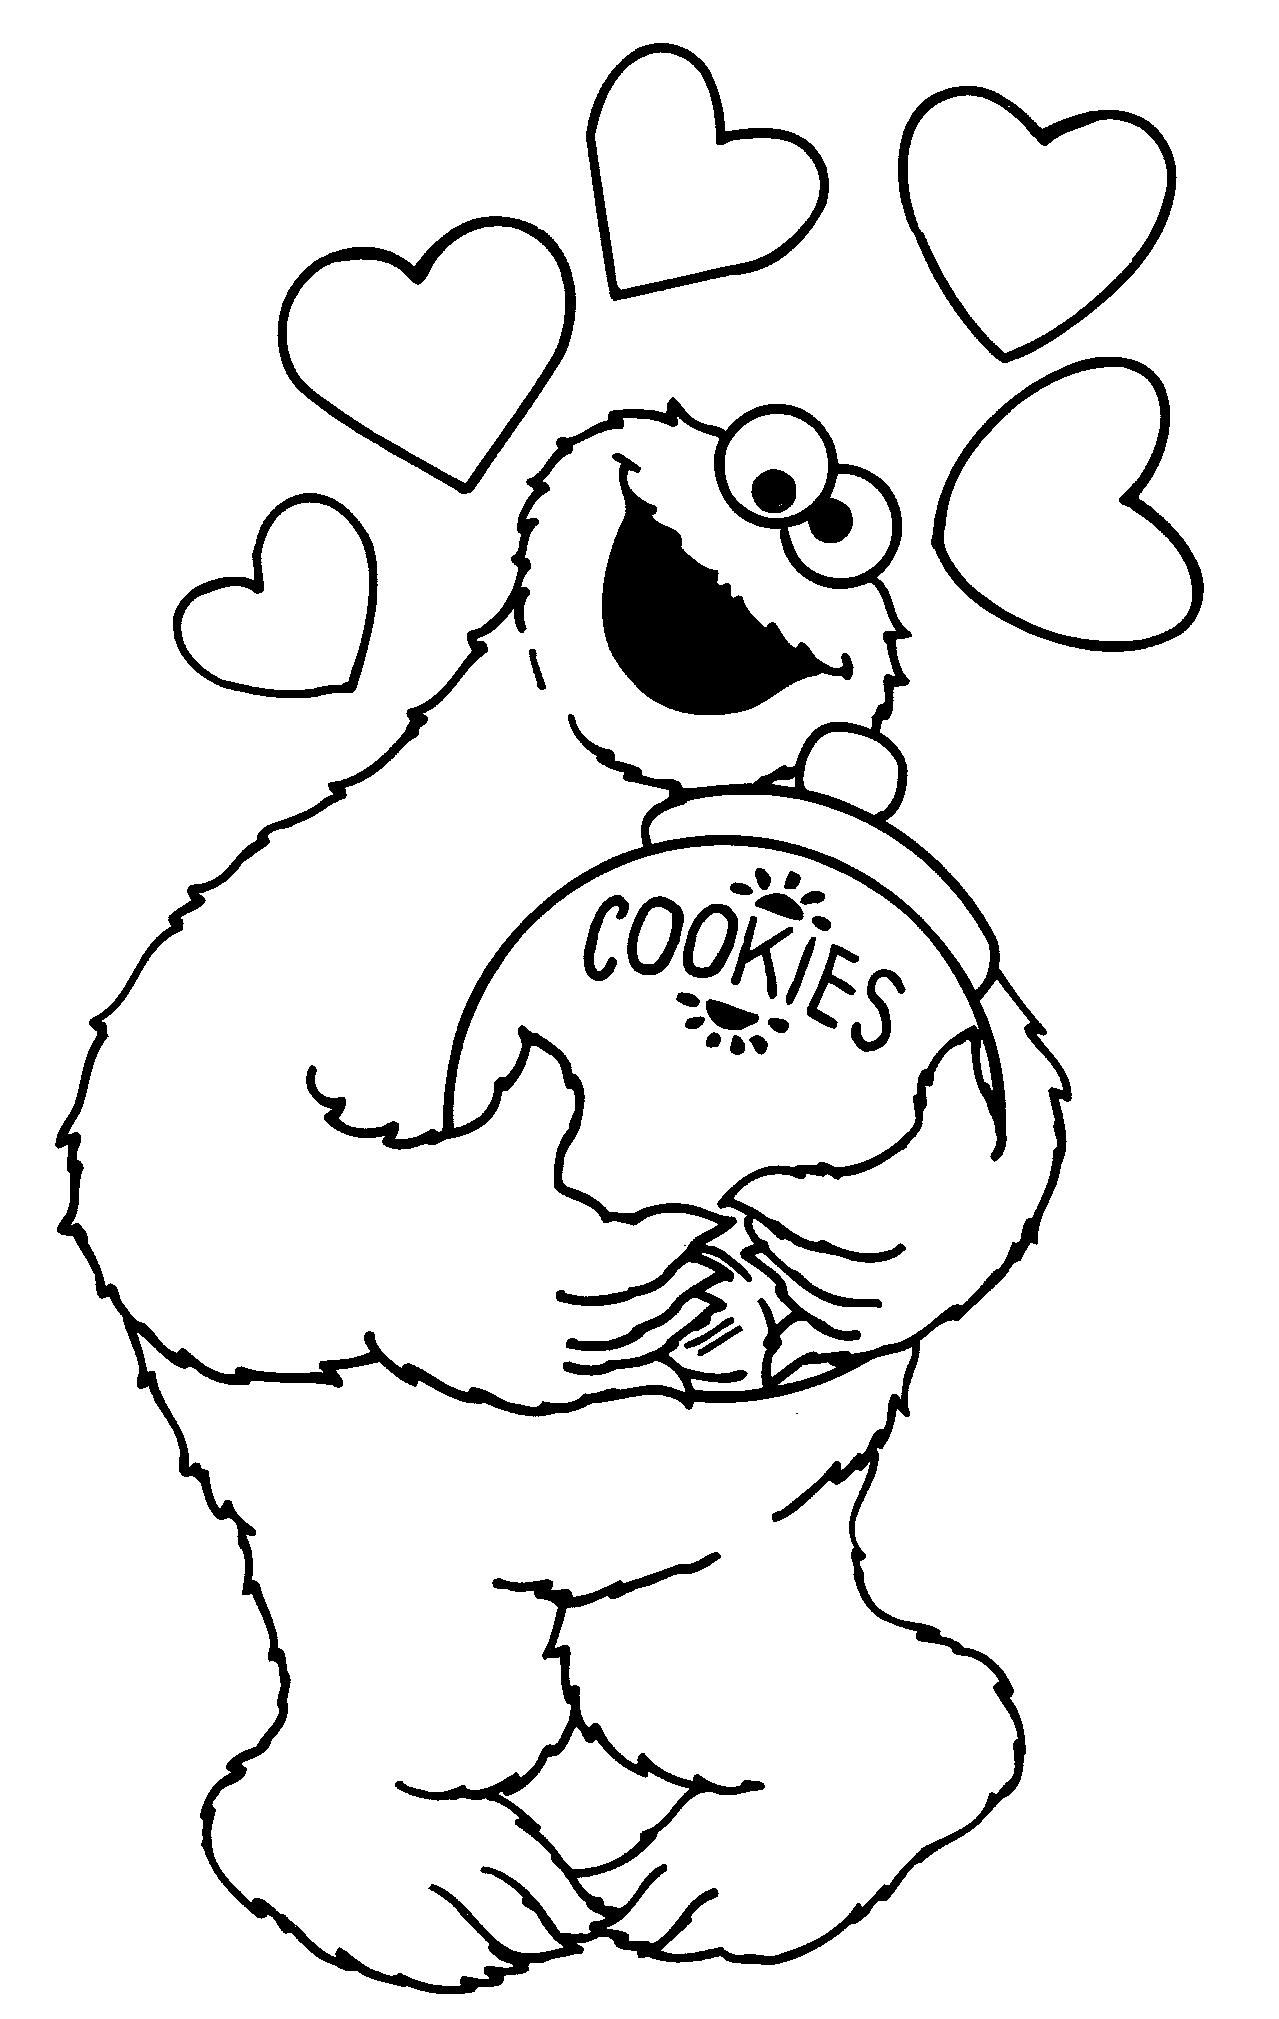 Cookie monster cookie jar coloring pages